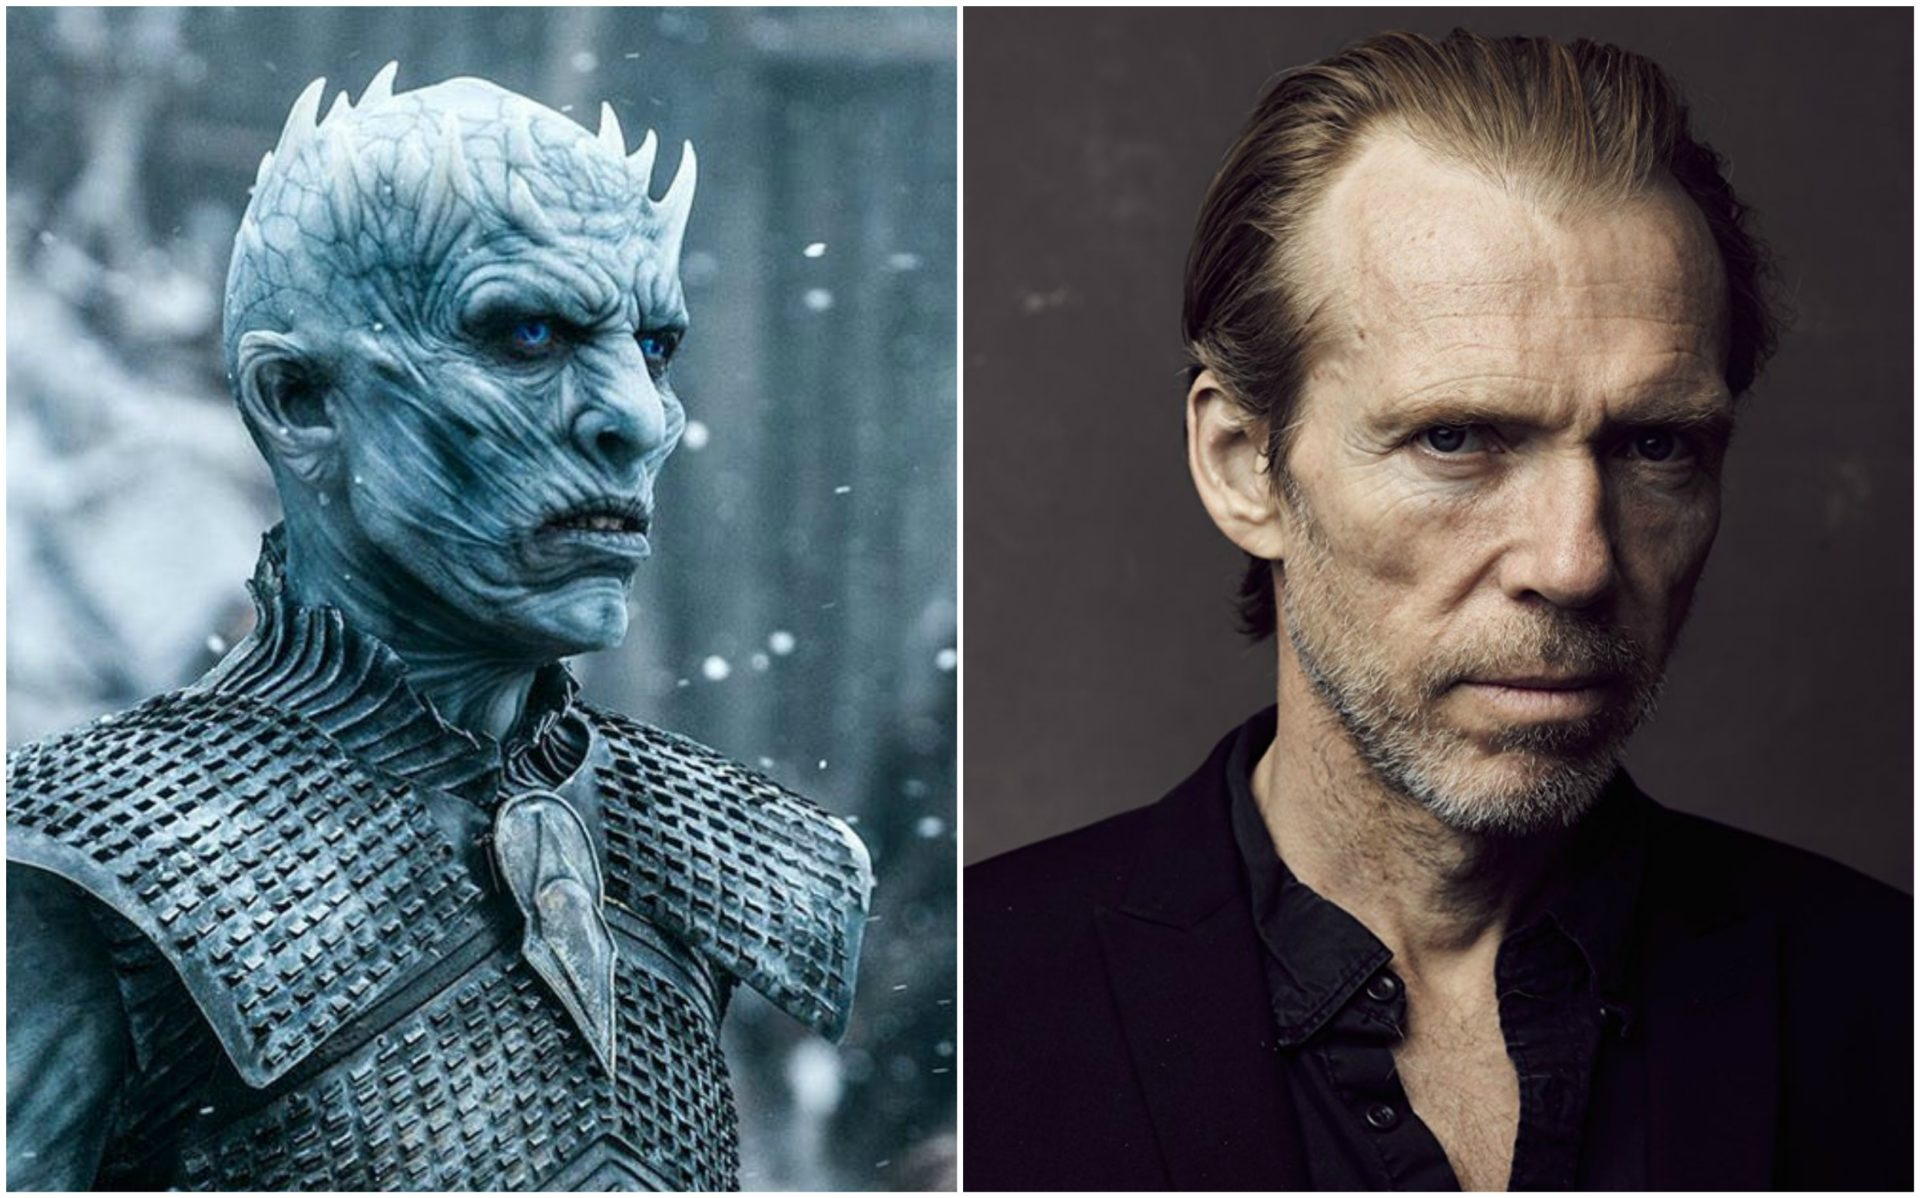 Richard Brake as The Night King